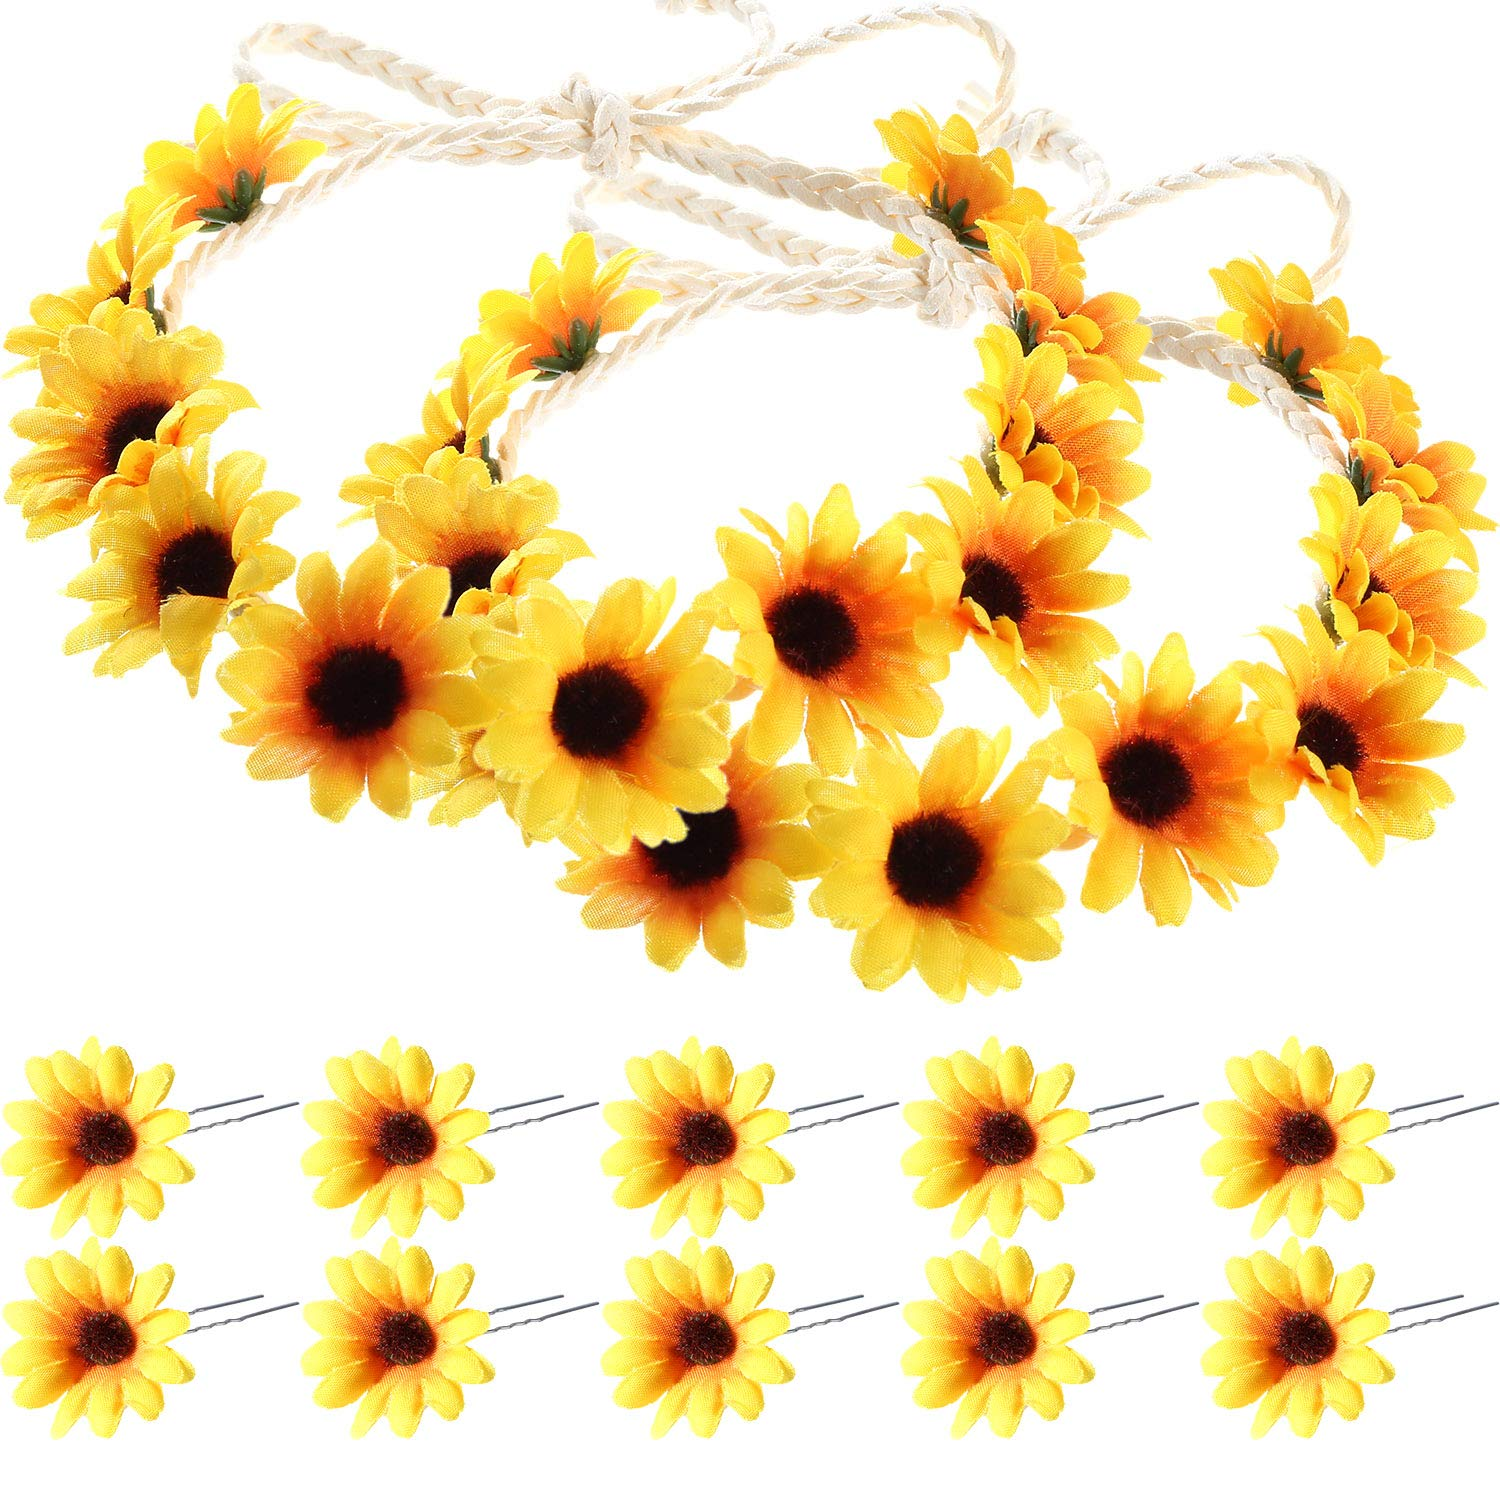 10 Pieces Sunflower Hair Pins Floral Hair Clips with 2 Pieces Sunflower Wreath for Women and Girls, Performances, Parties, Weddings, Festivals Boao